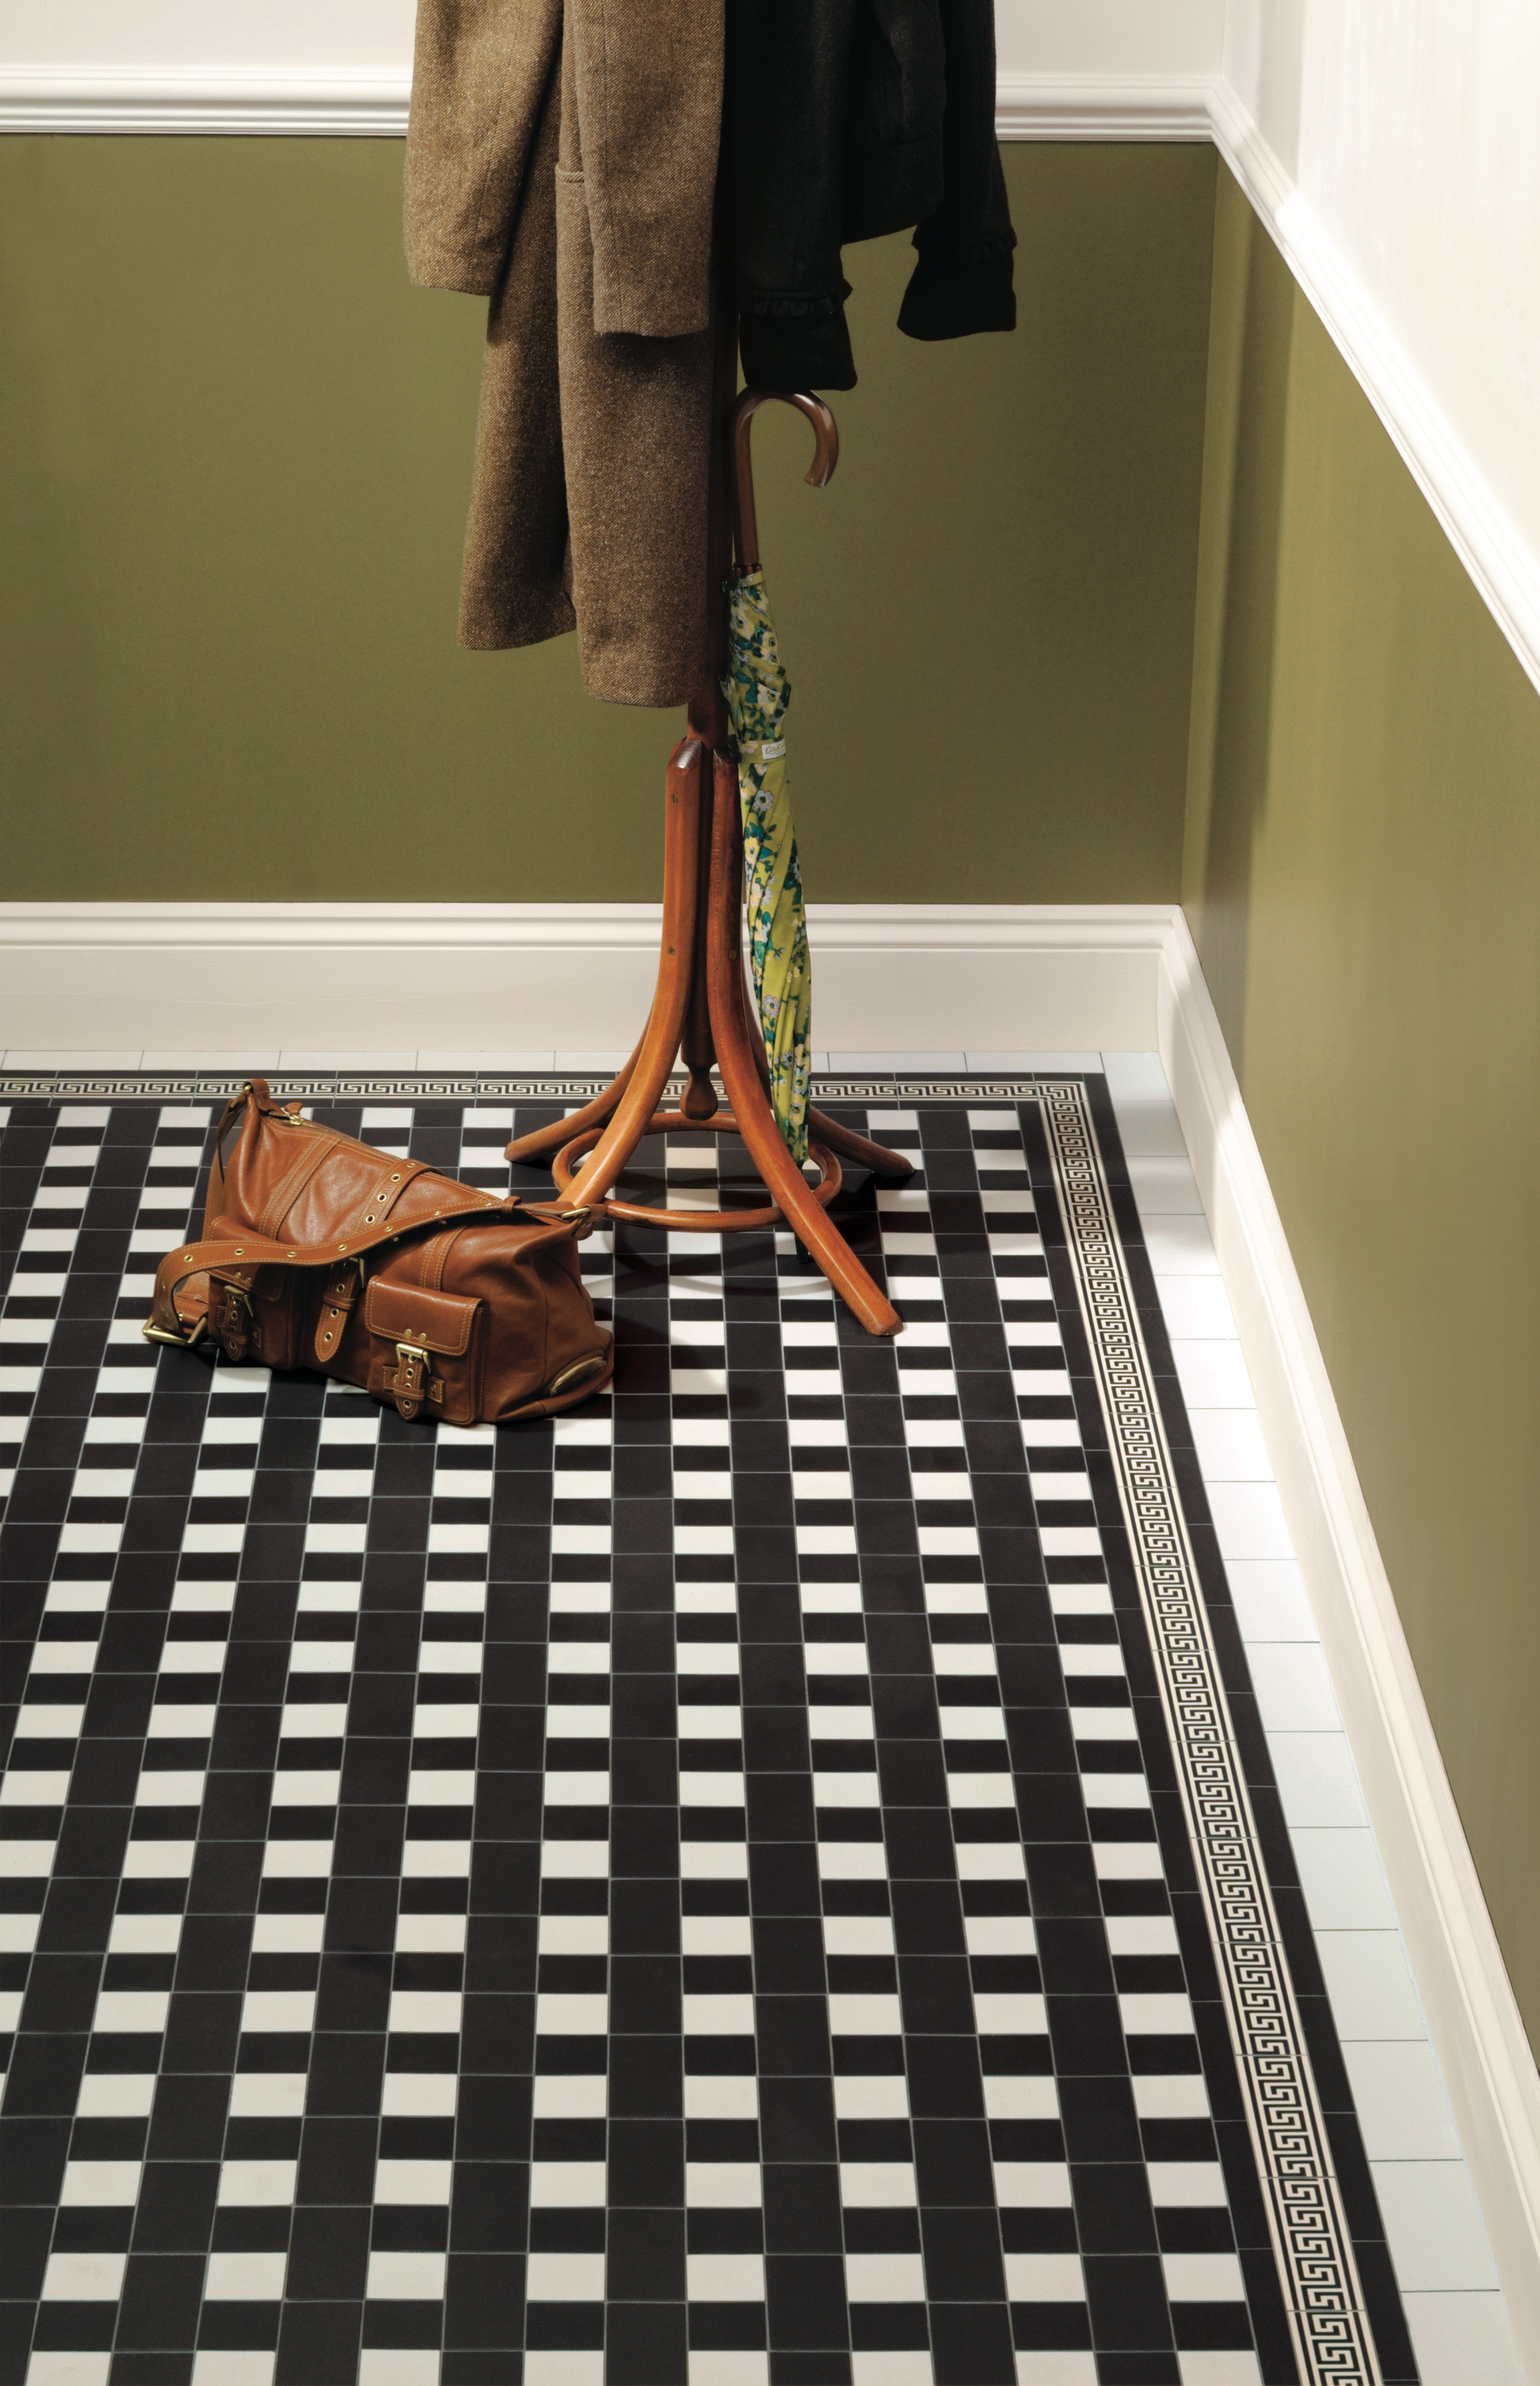 Original Style - VFT - Ambleside pattern in Black and Dover White with Greek Key border.jpg